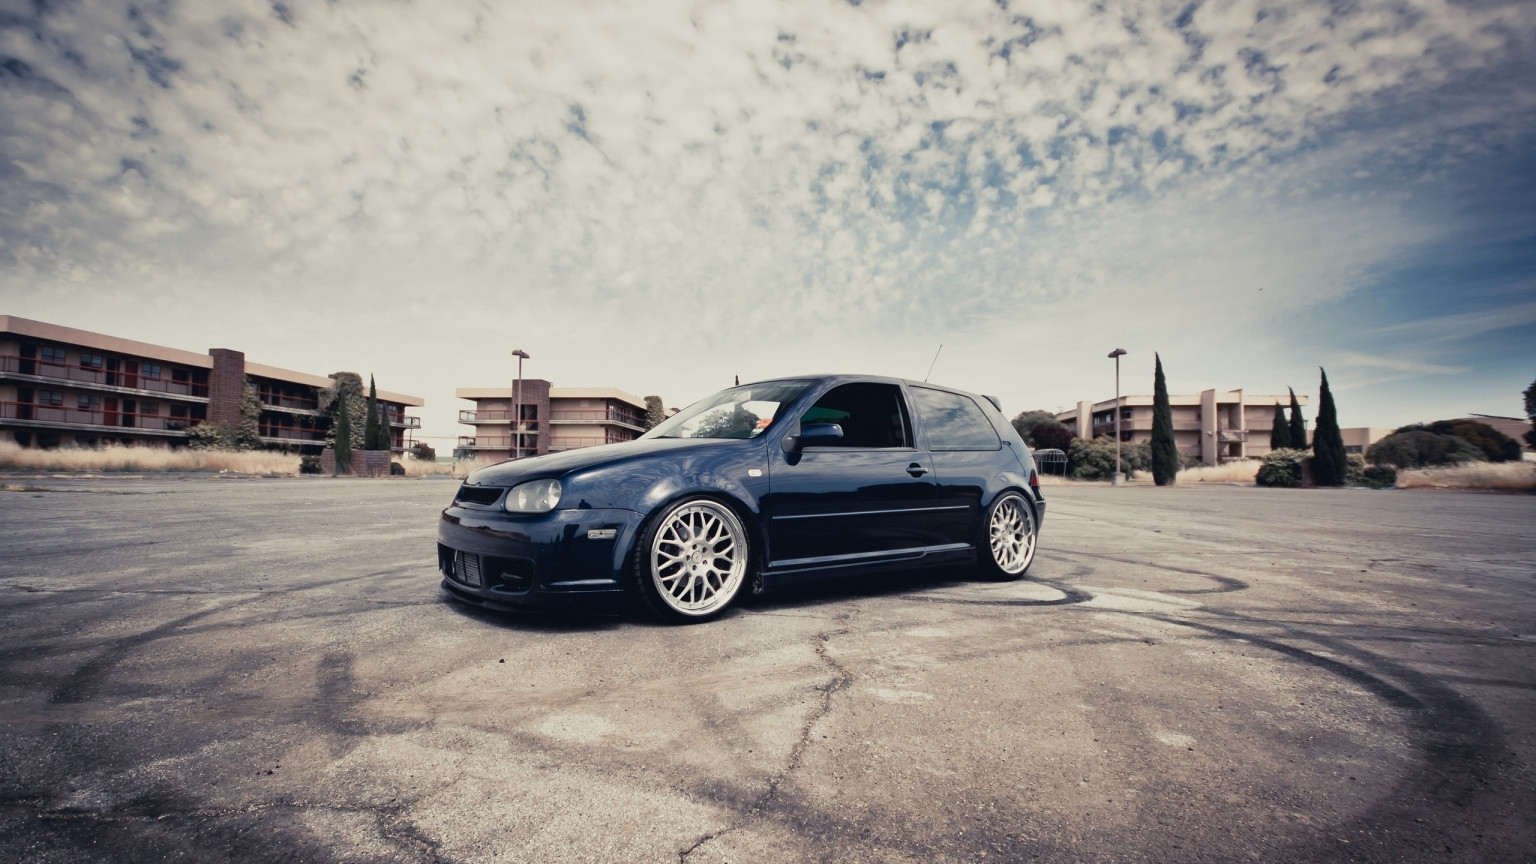 VW Golf III Coupe Tuning for 1536 x 864 HDTV resolution